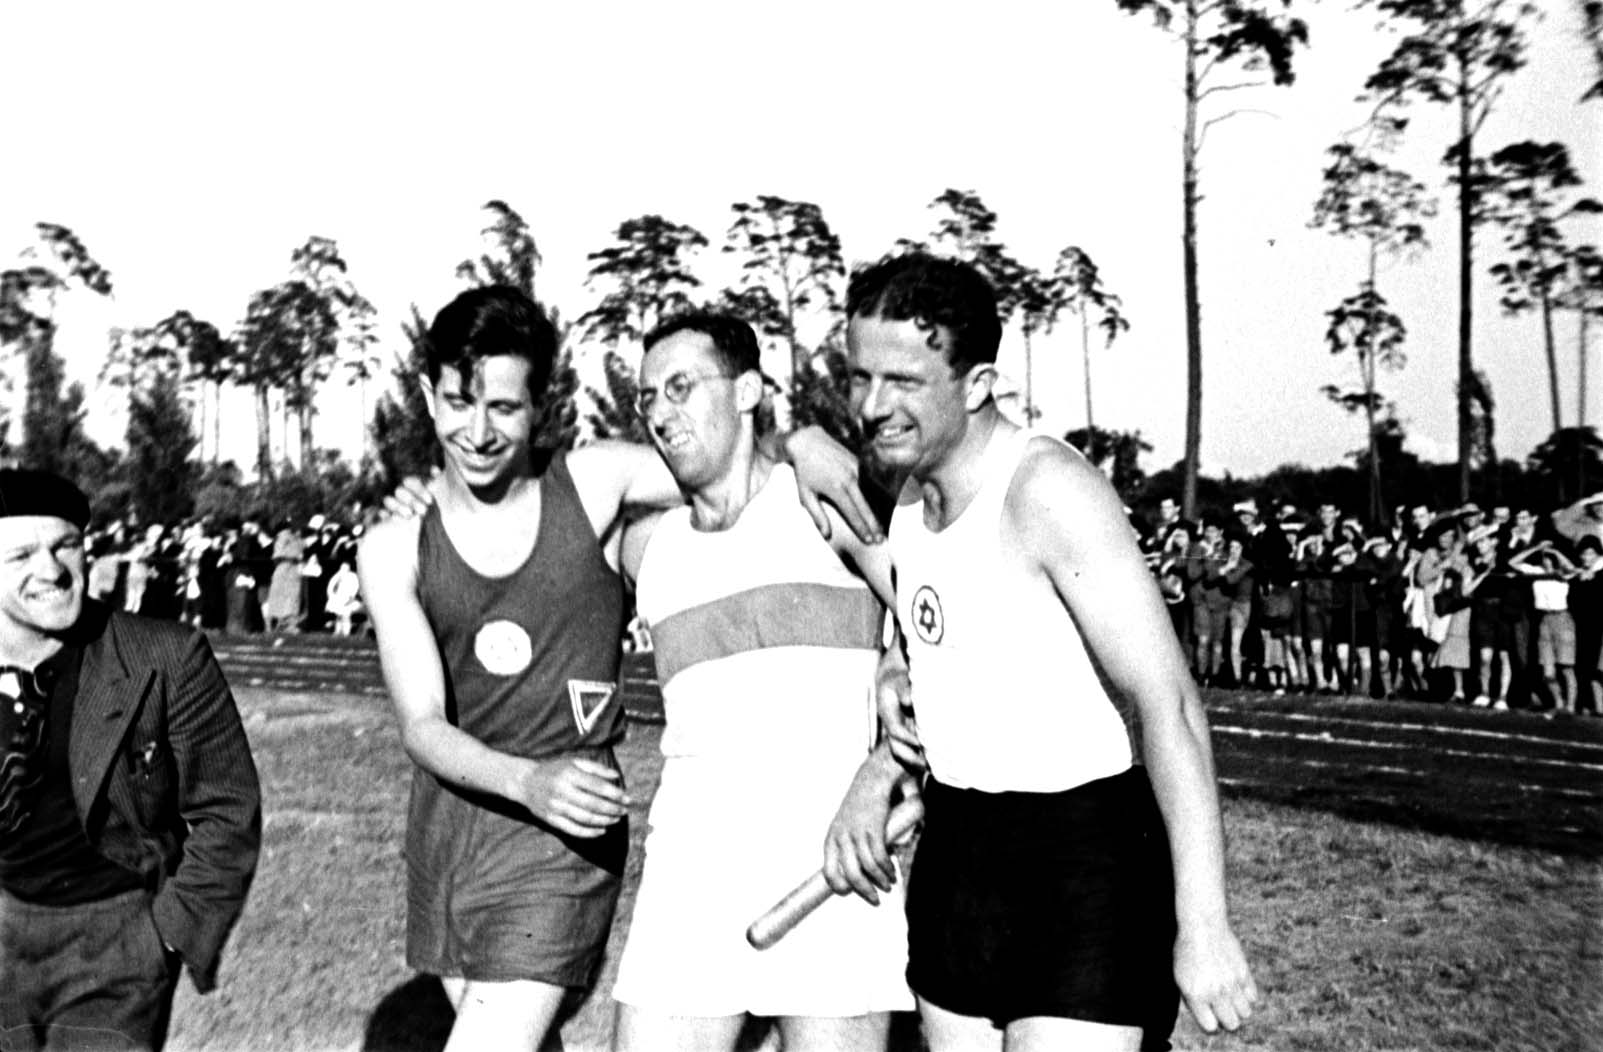 Berlin, Germany, 16 6 1935, Frankenstein, Dreyer and Orgler Track and field athletes at the Maccabi Berlin International Sports Day